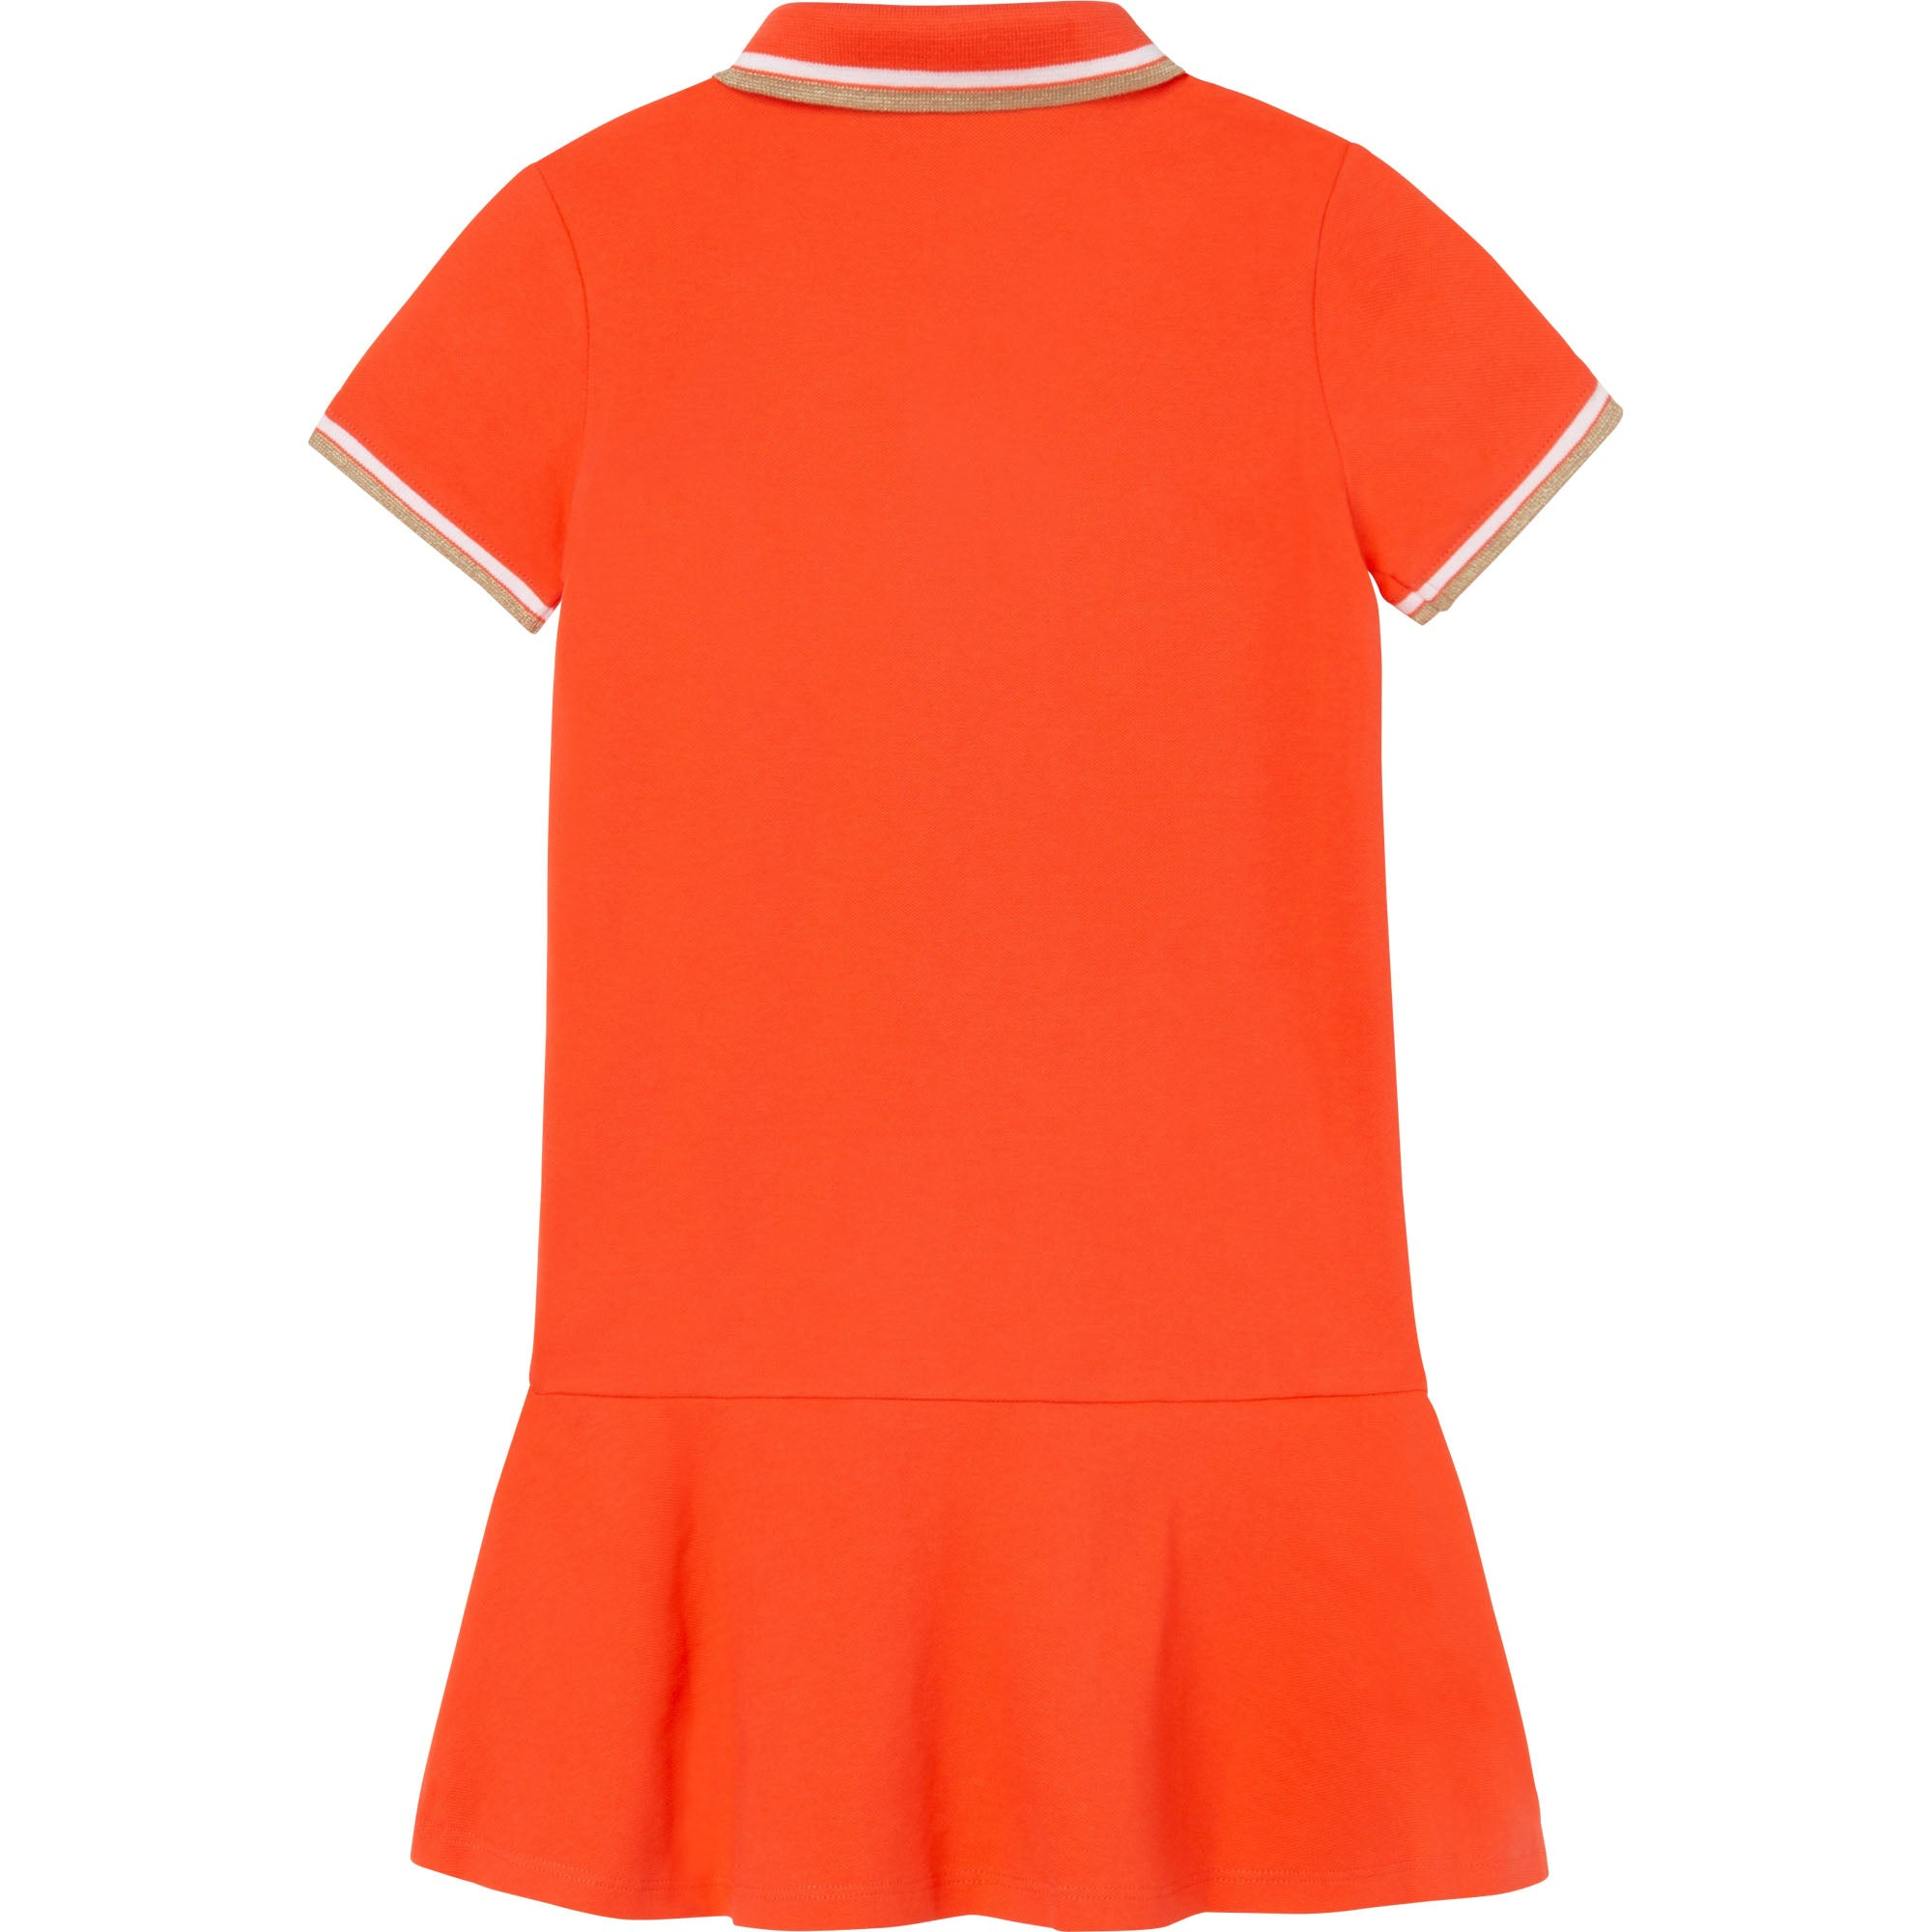 HUGO BOSS J12191 GIRLS DRESS PEACH